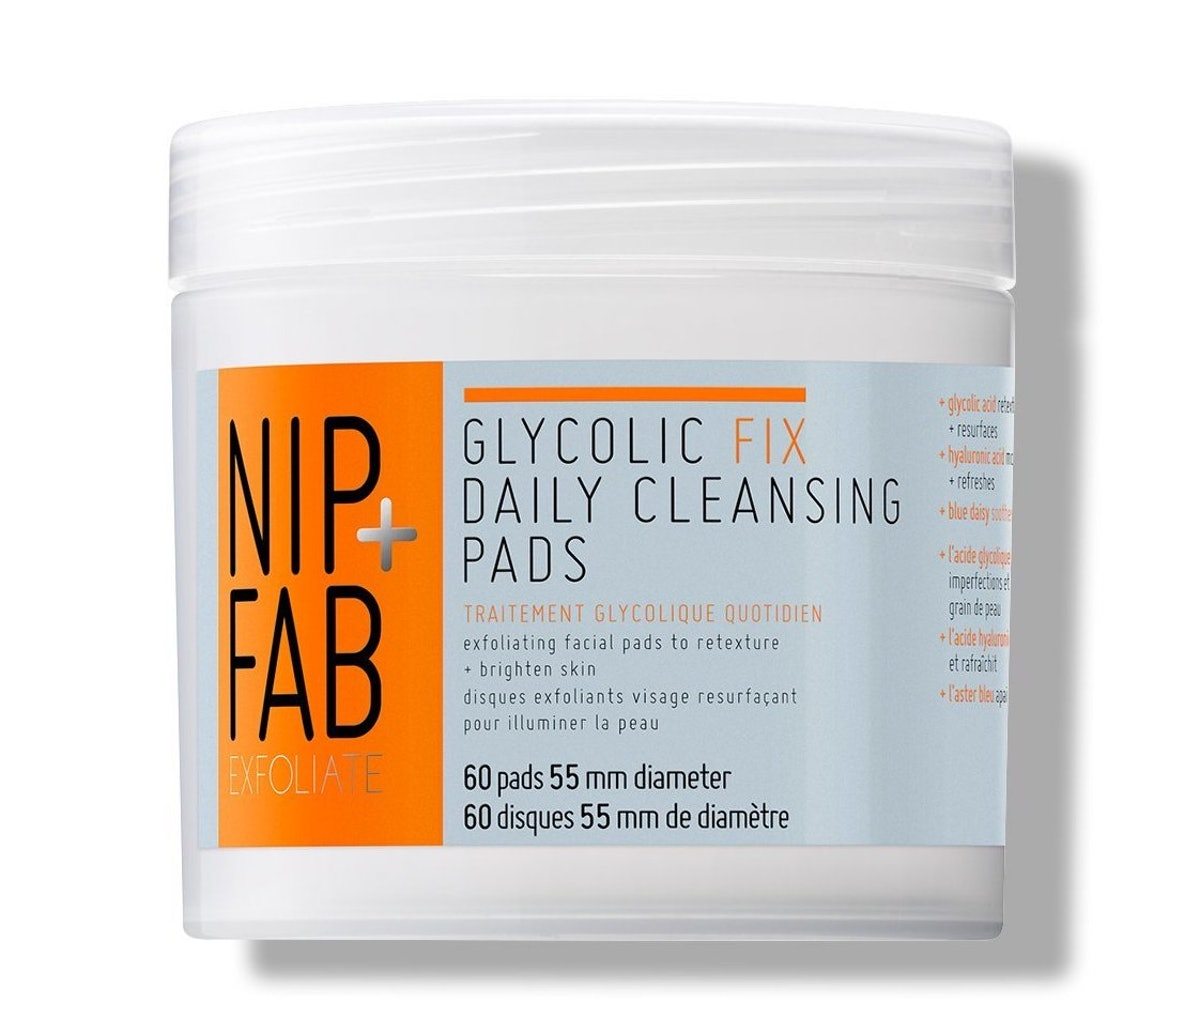 Nip + Fab Glycolic Fix Daily Cleansing Pads (60 Pads)